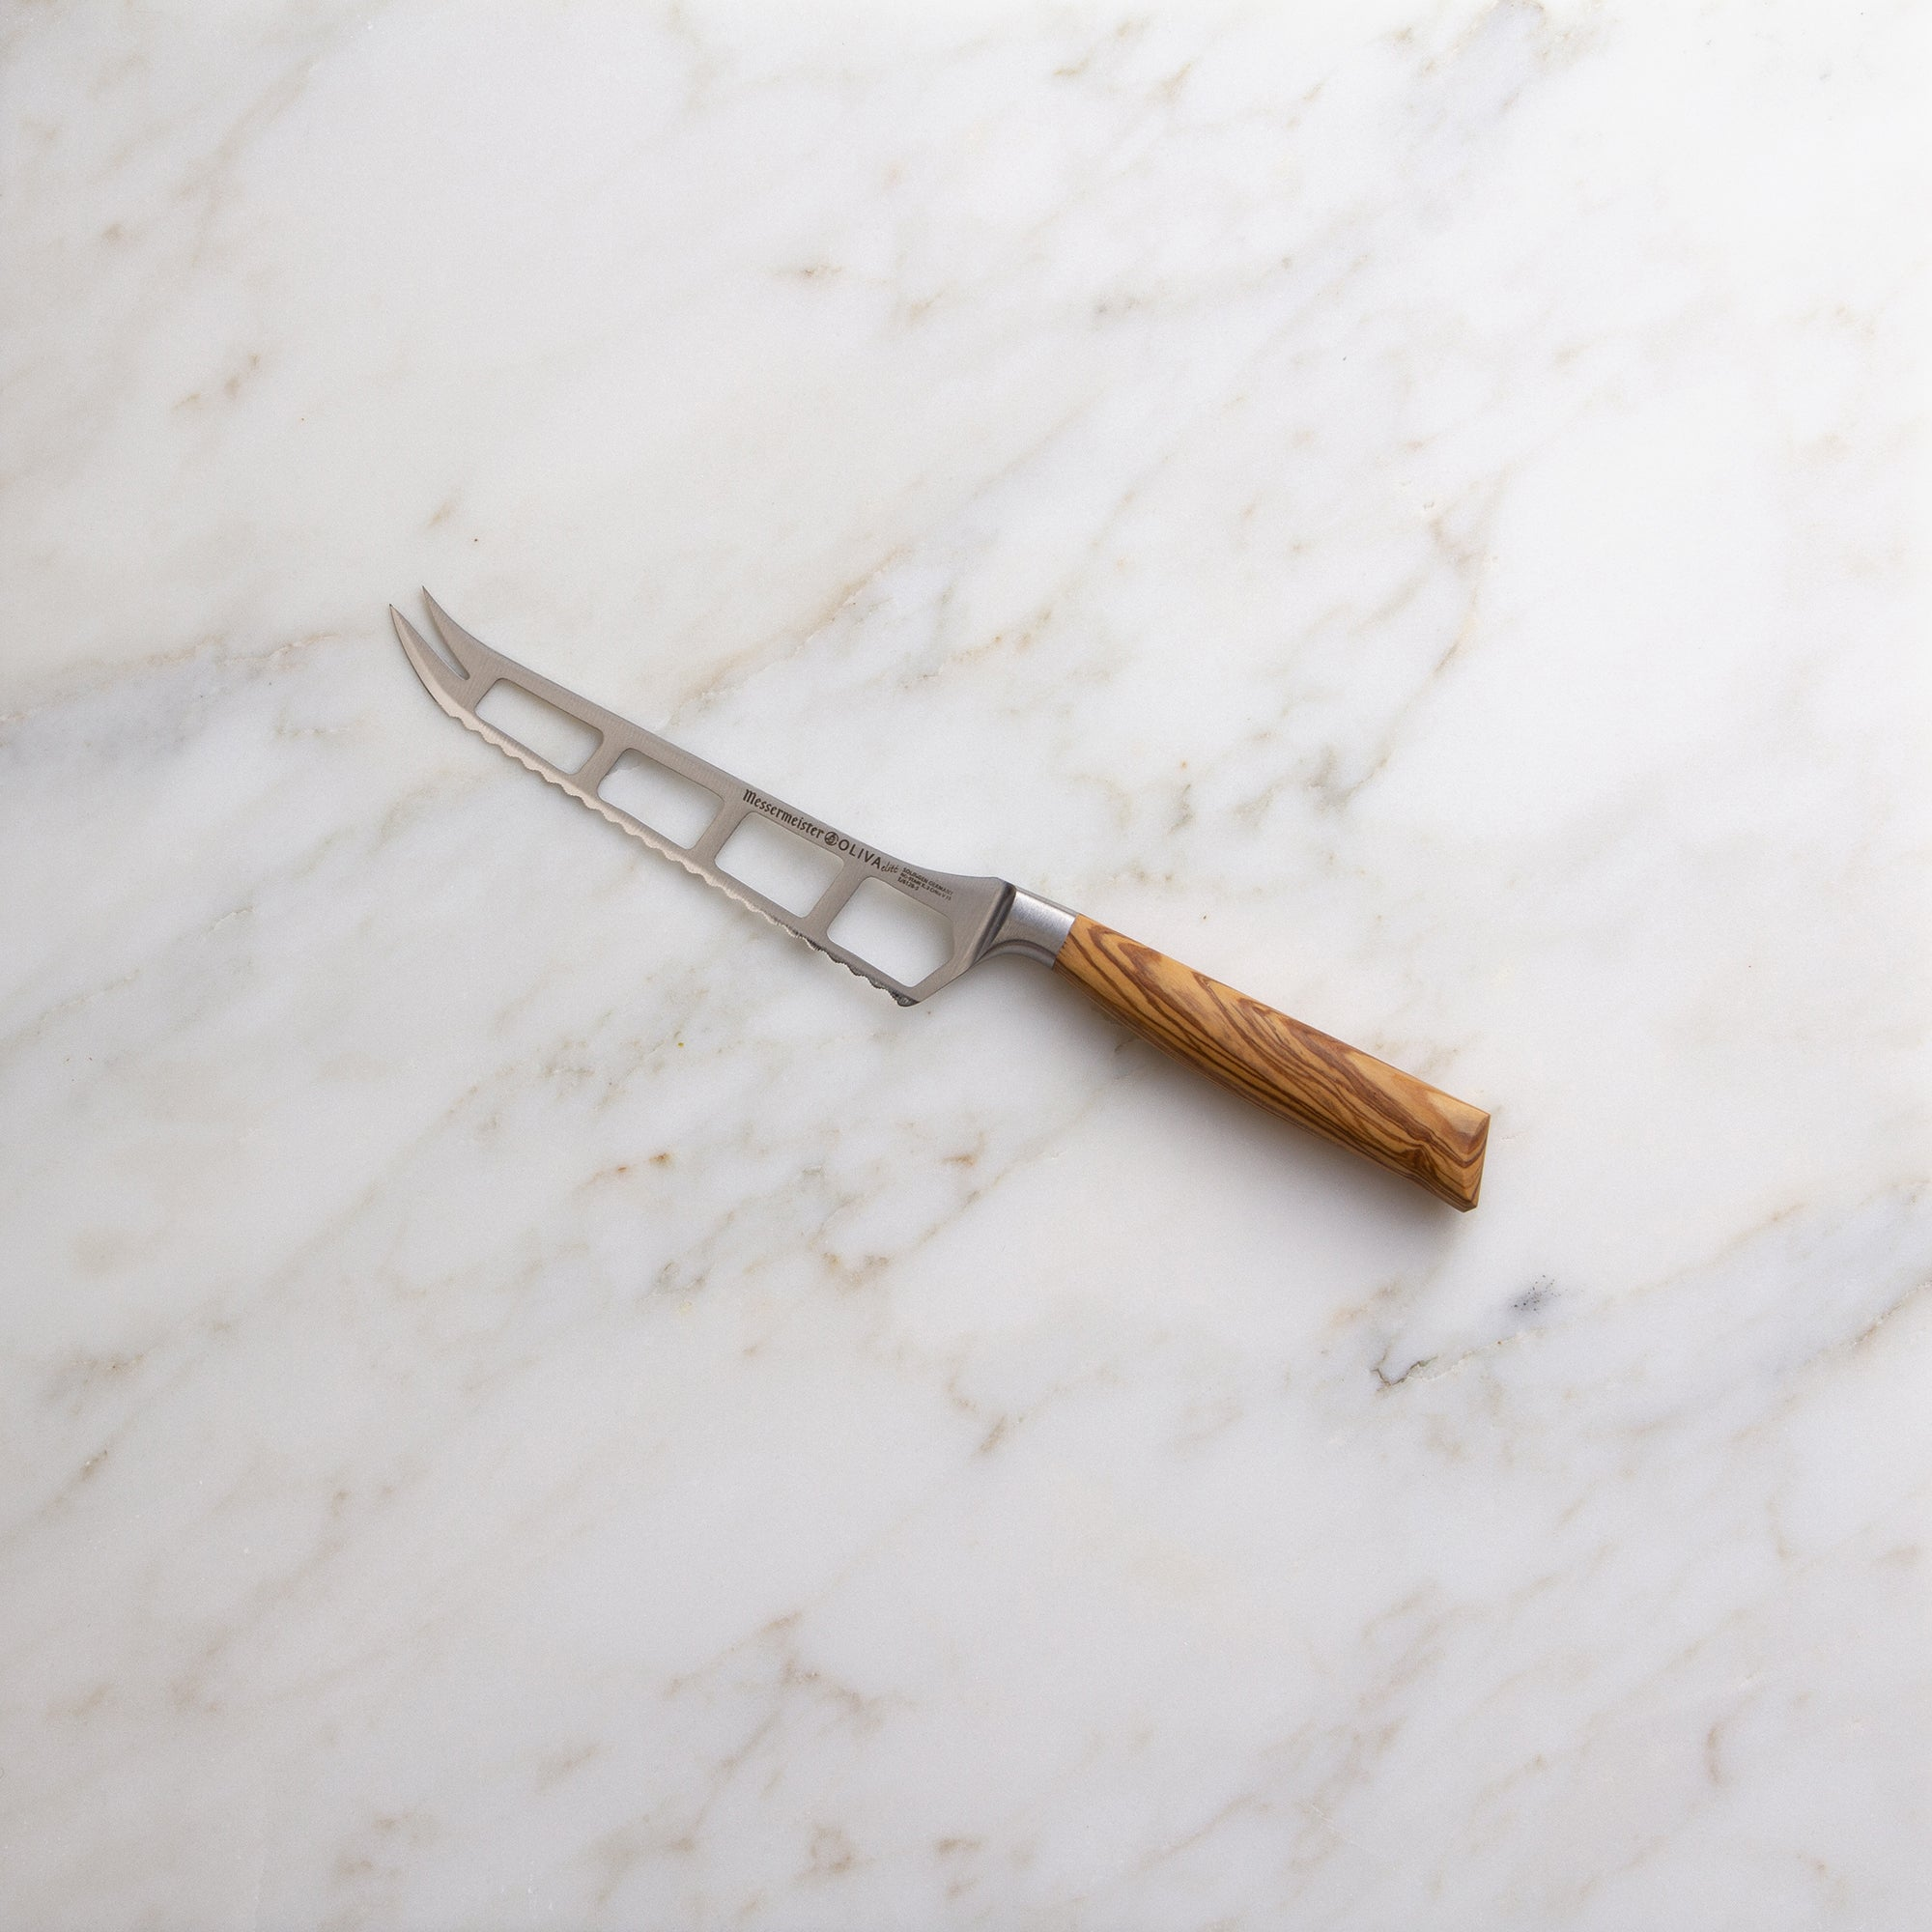 Oliva Elité 5 Inch Cheese And Tomato Knife_Angle_Marble